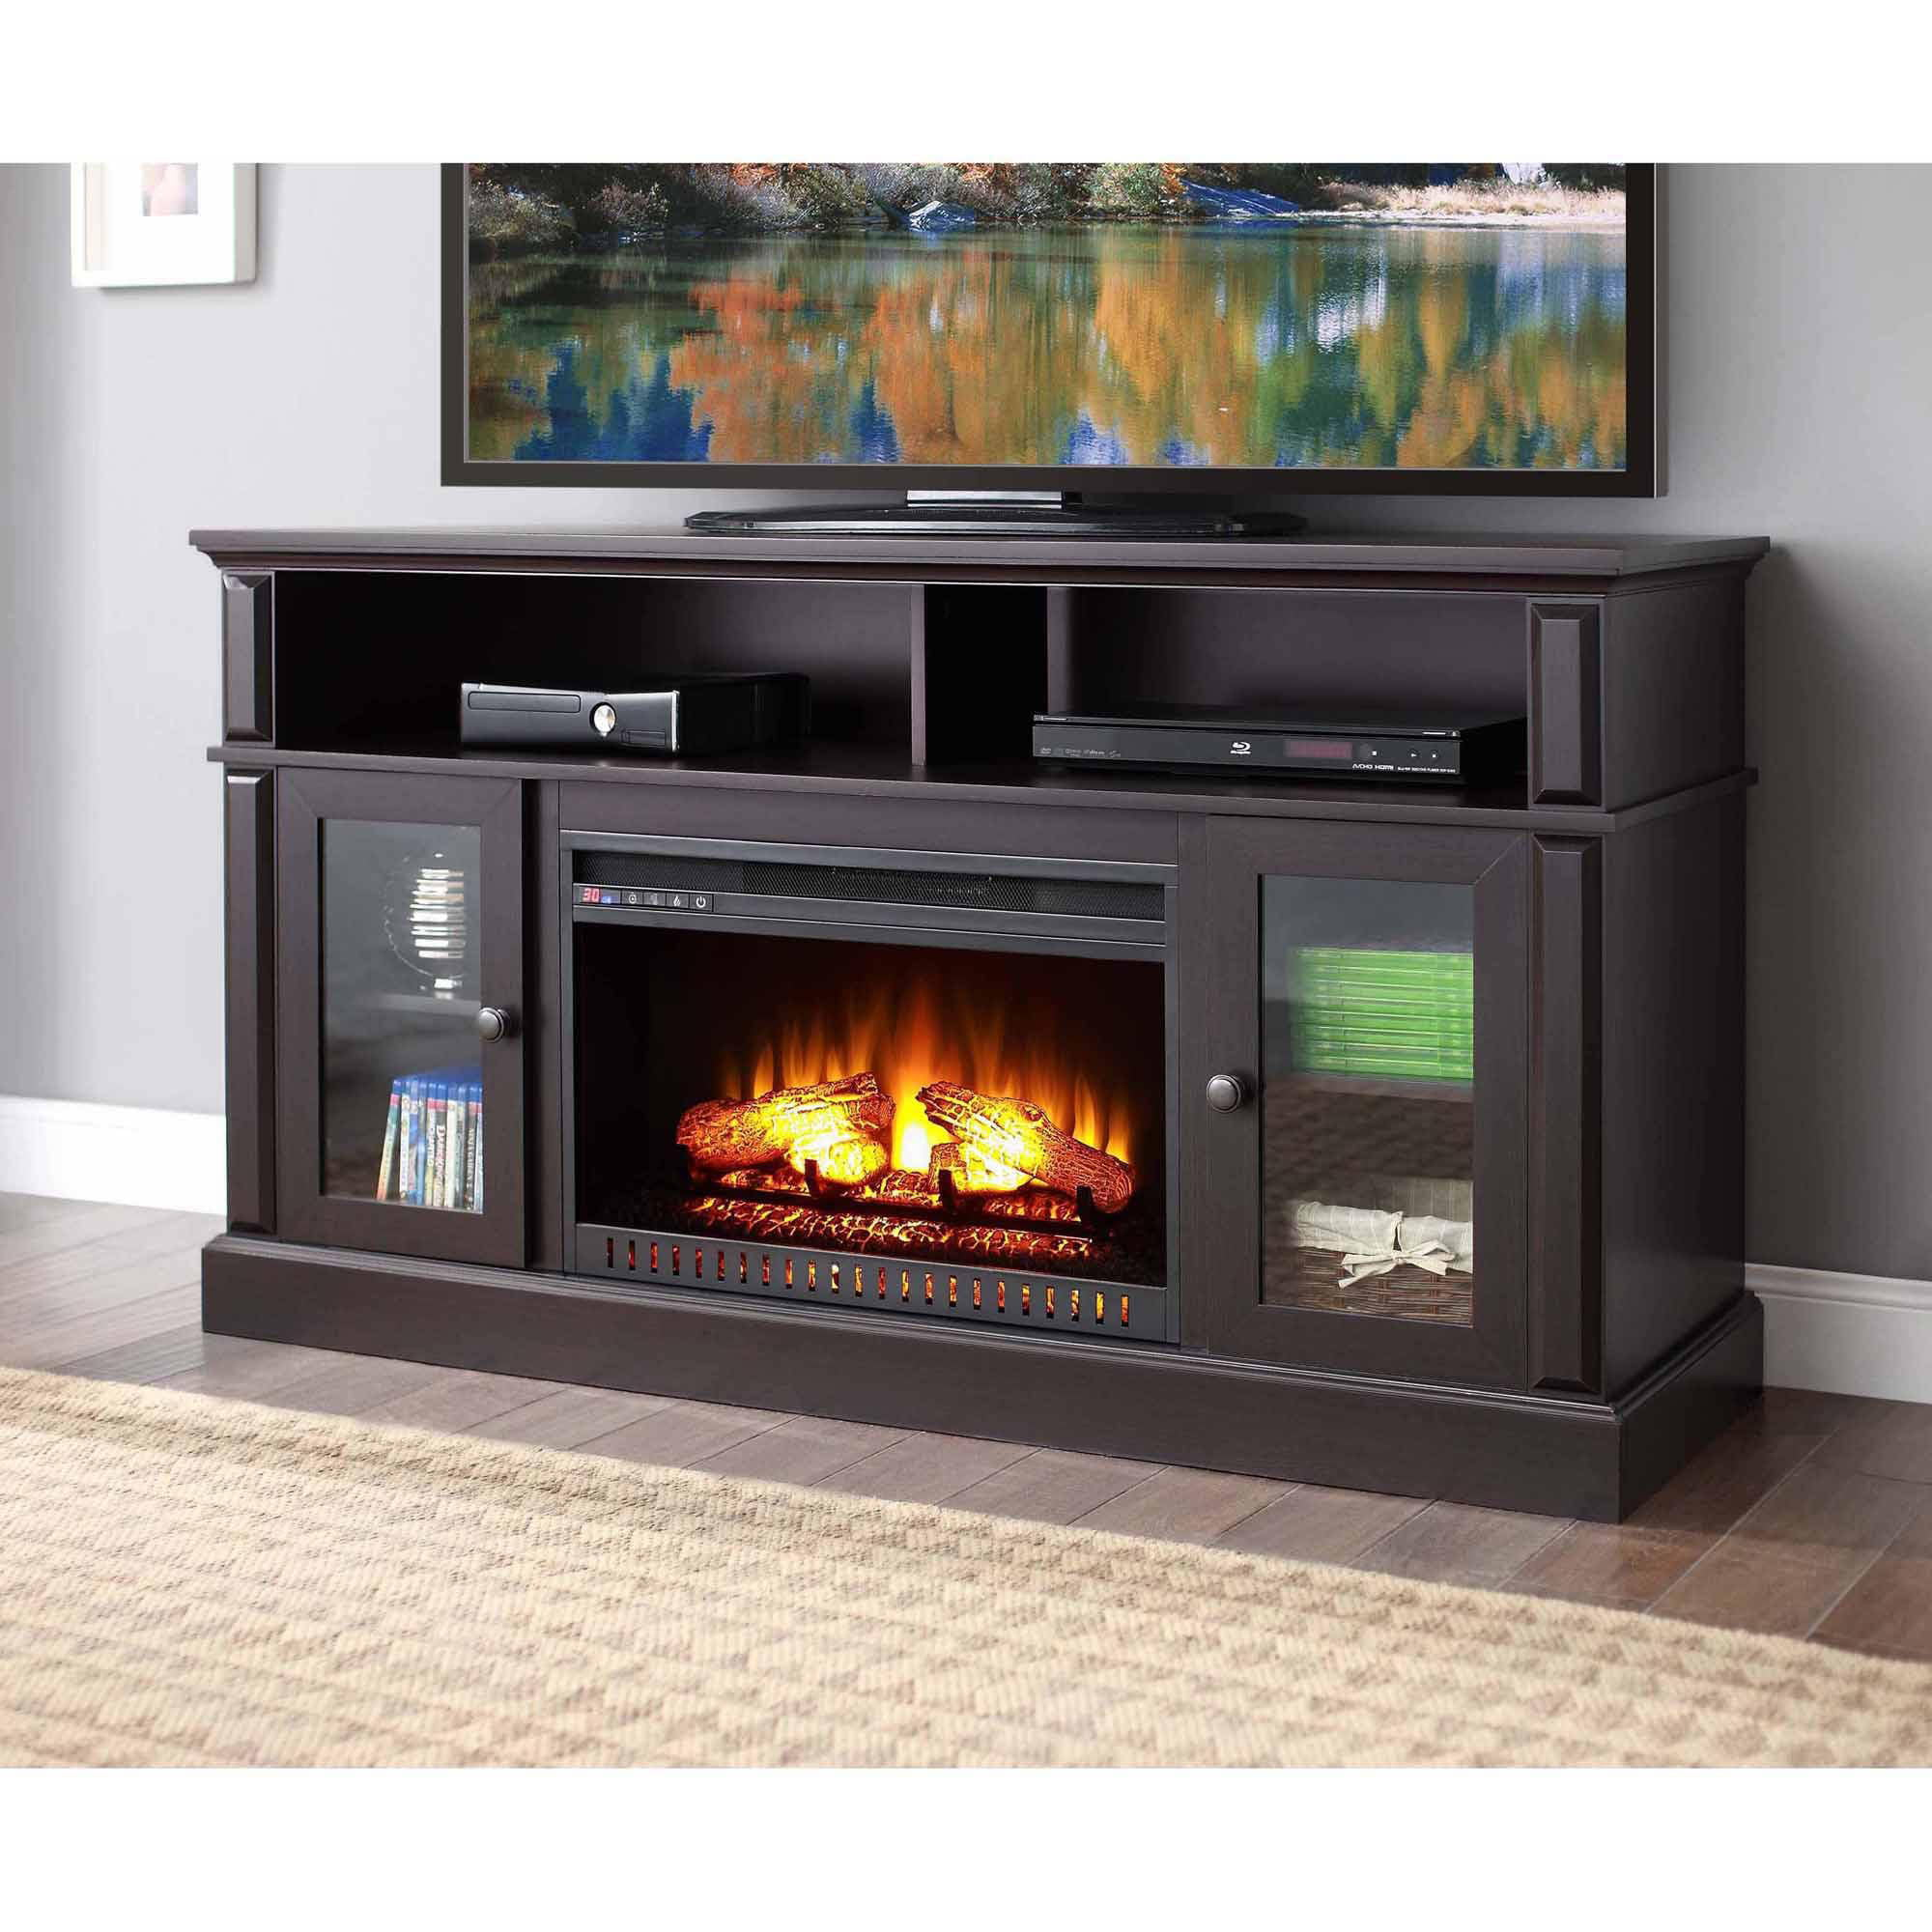 decor flame electric fireplace with 40